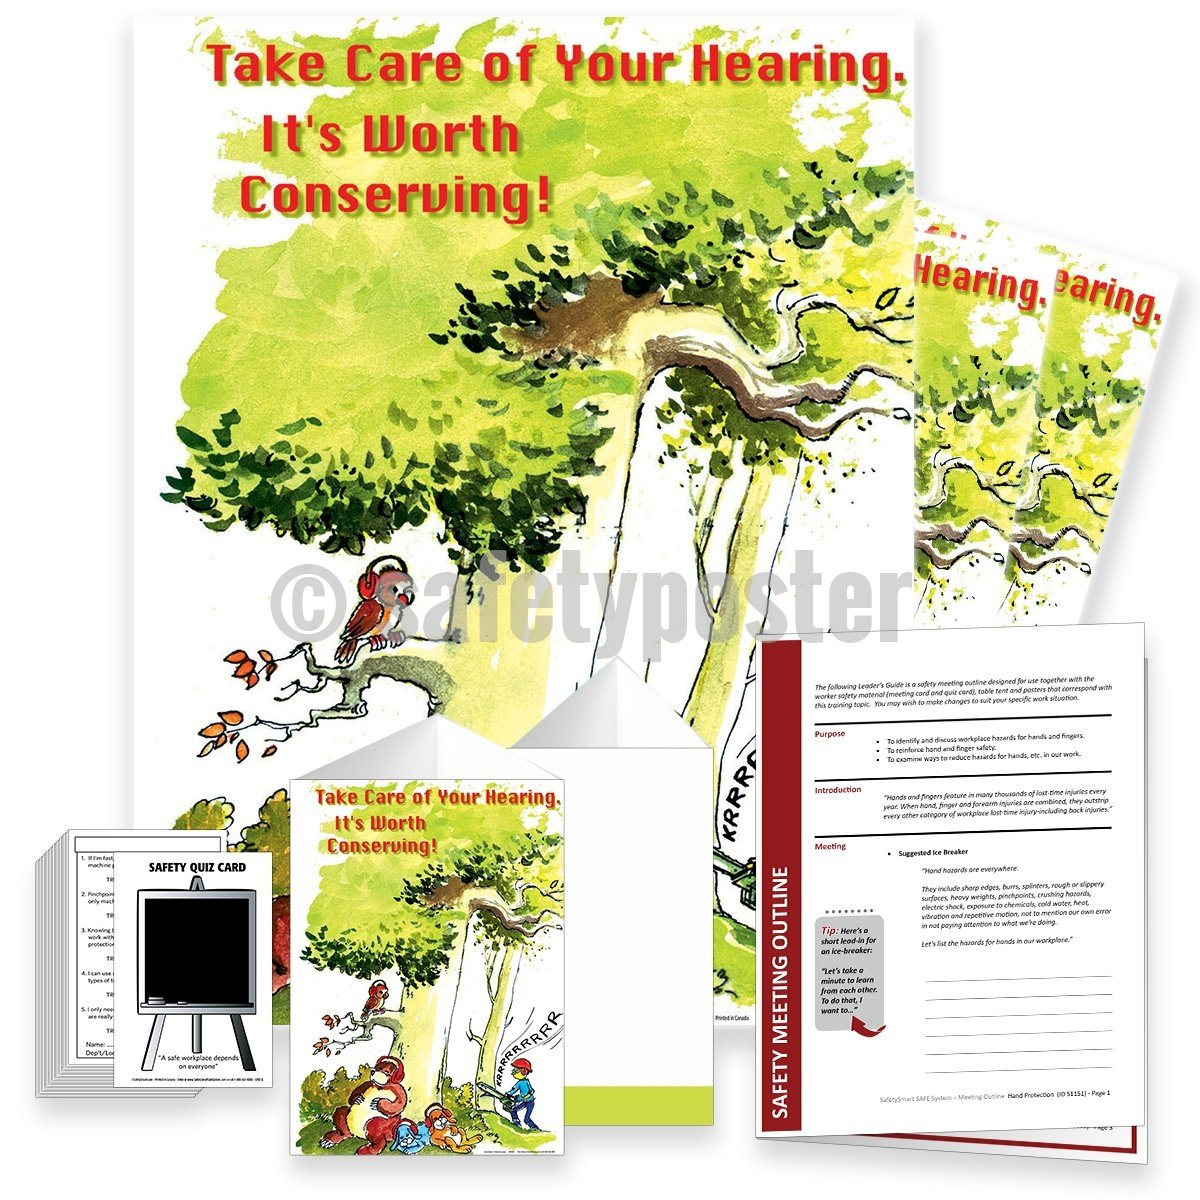 Safety Meeting Kit - Take Care Of Your Hearing Kits